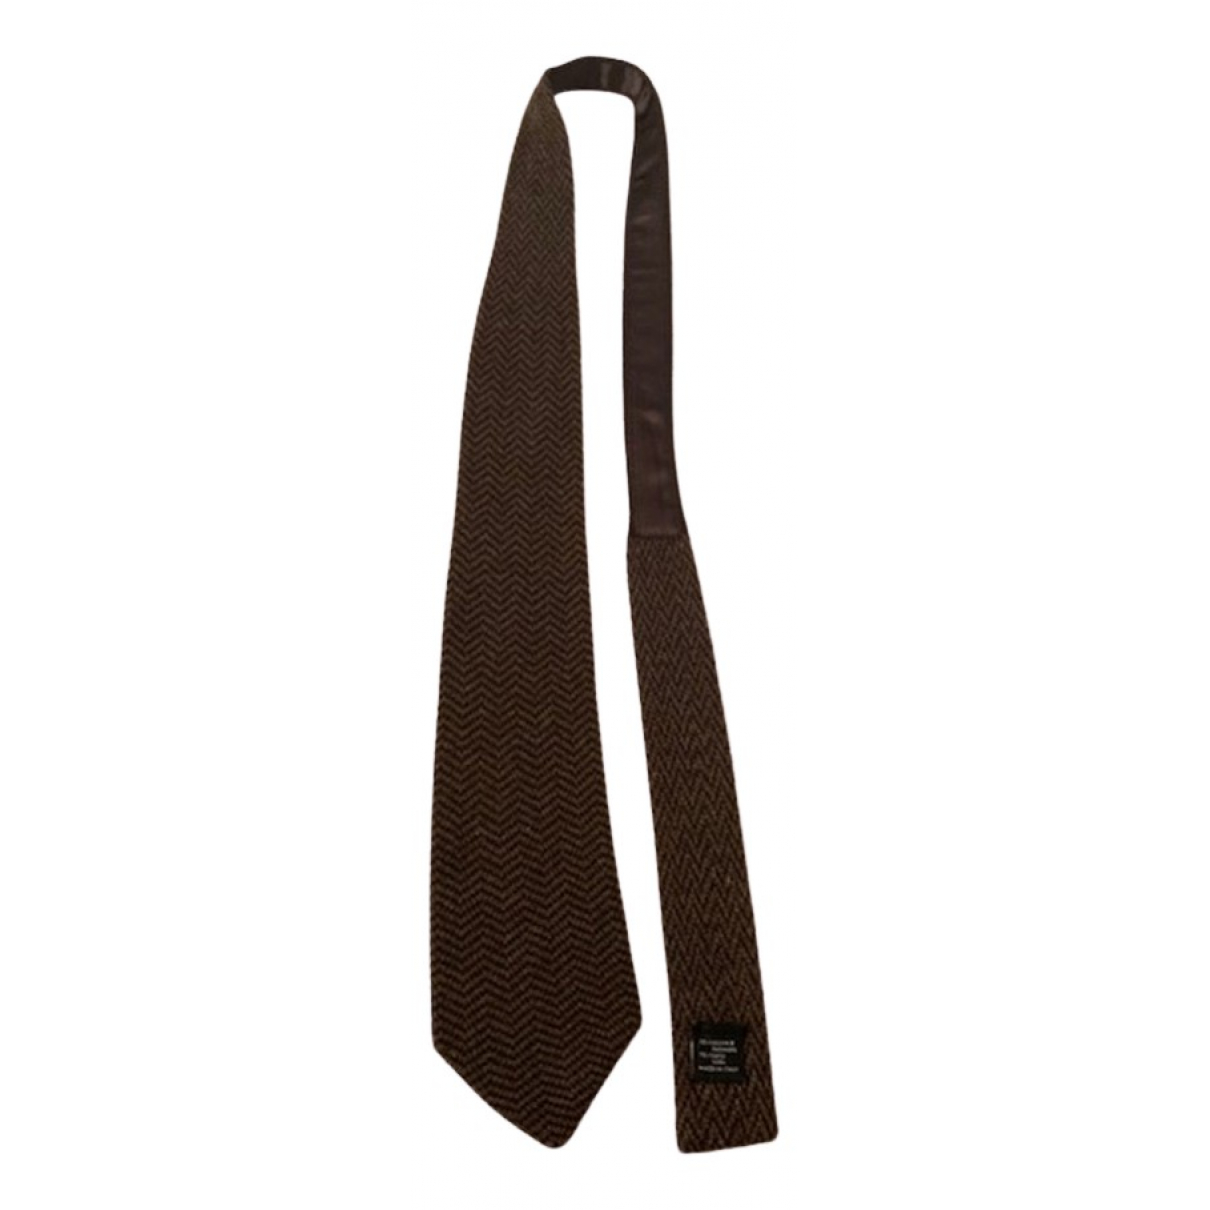 Emporio Armani N Brown Wool Ties for Men N